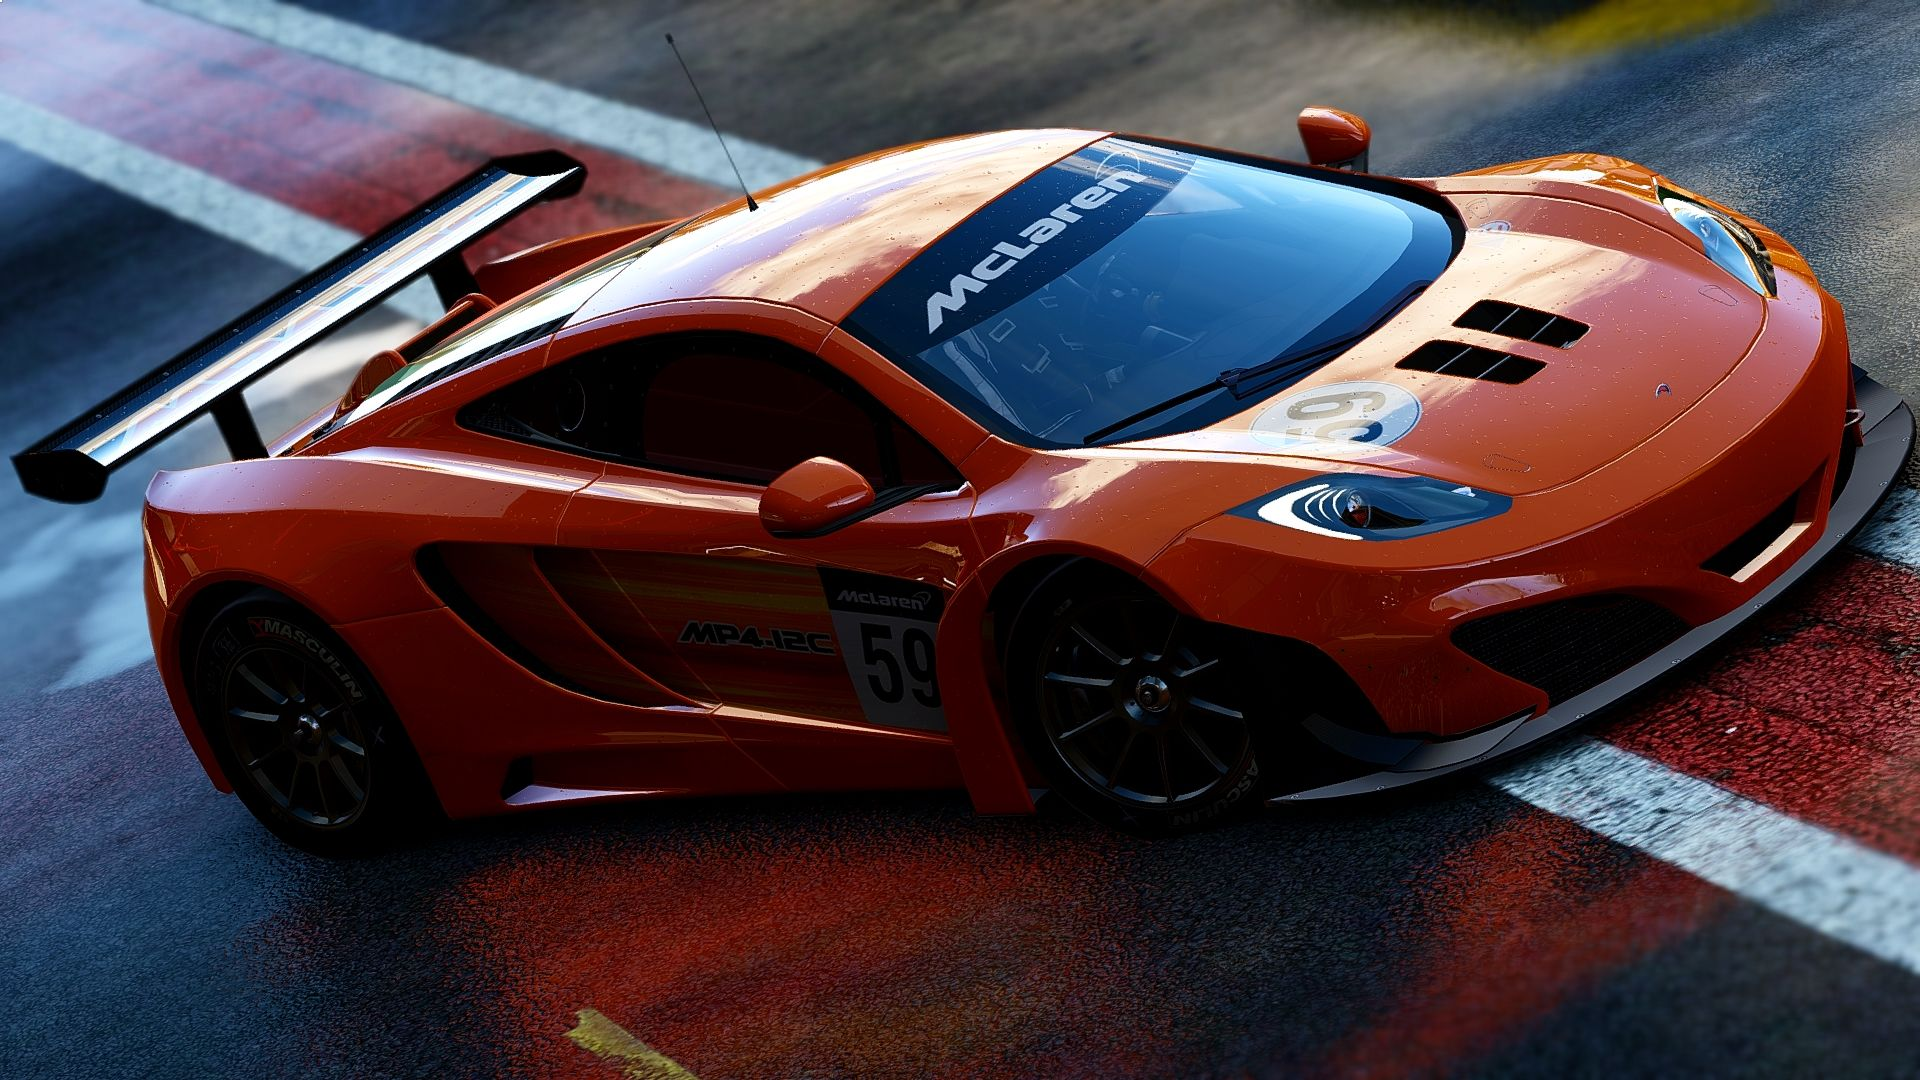 Project Cars 4K Wallpapers - Top Free Project Cars 4K ...